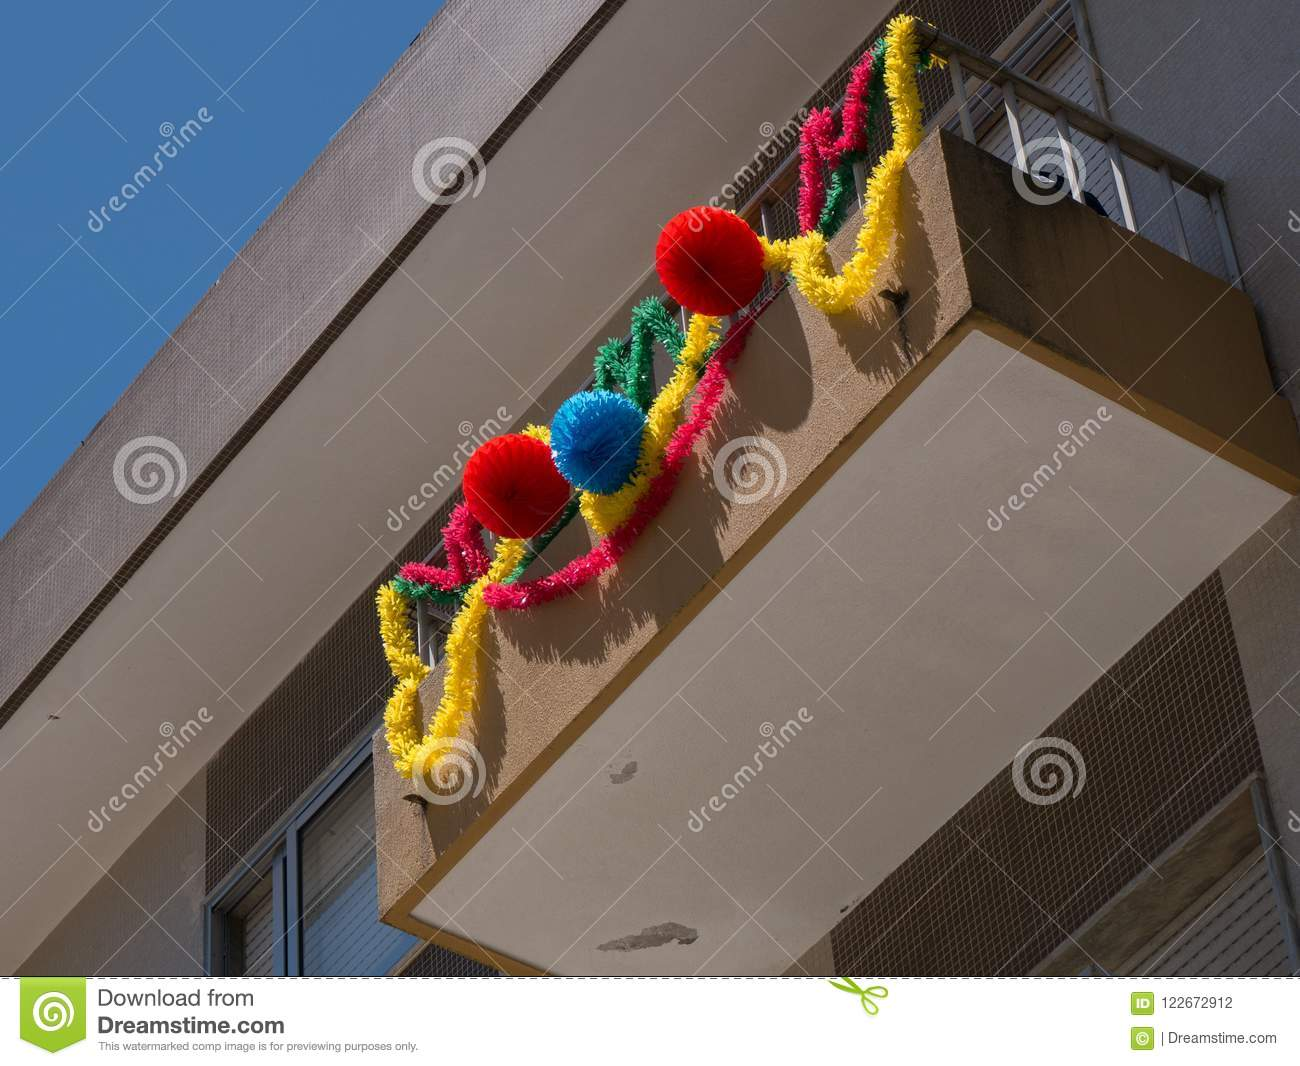 Garlands hang from balconies in Portugal to commemorate Portugal`s Saints day